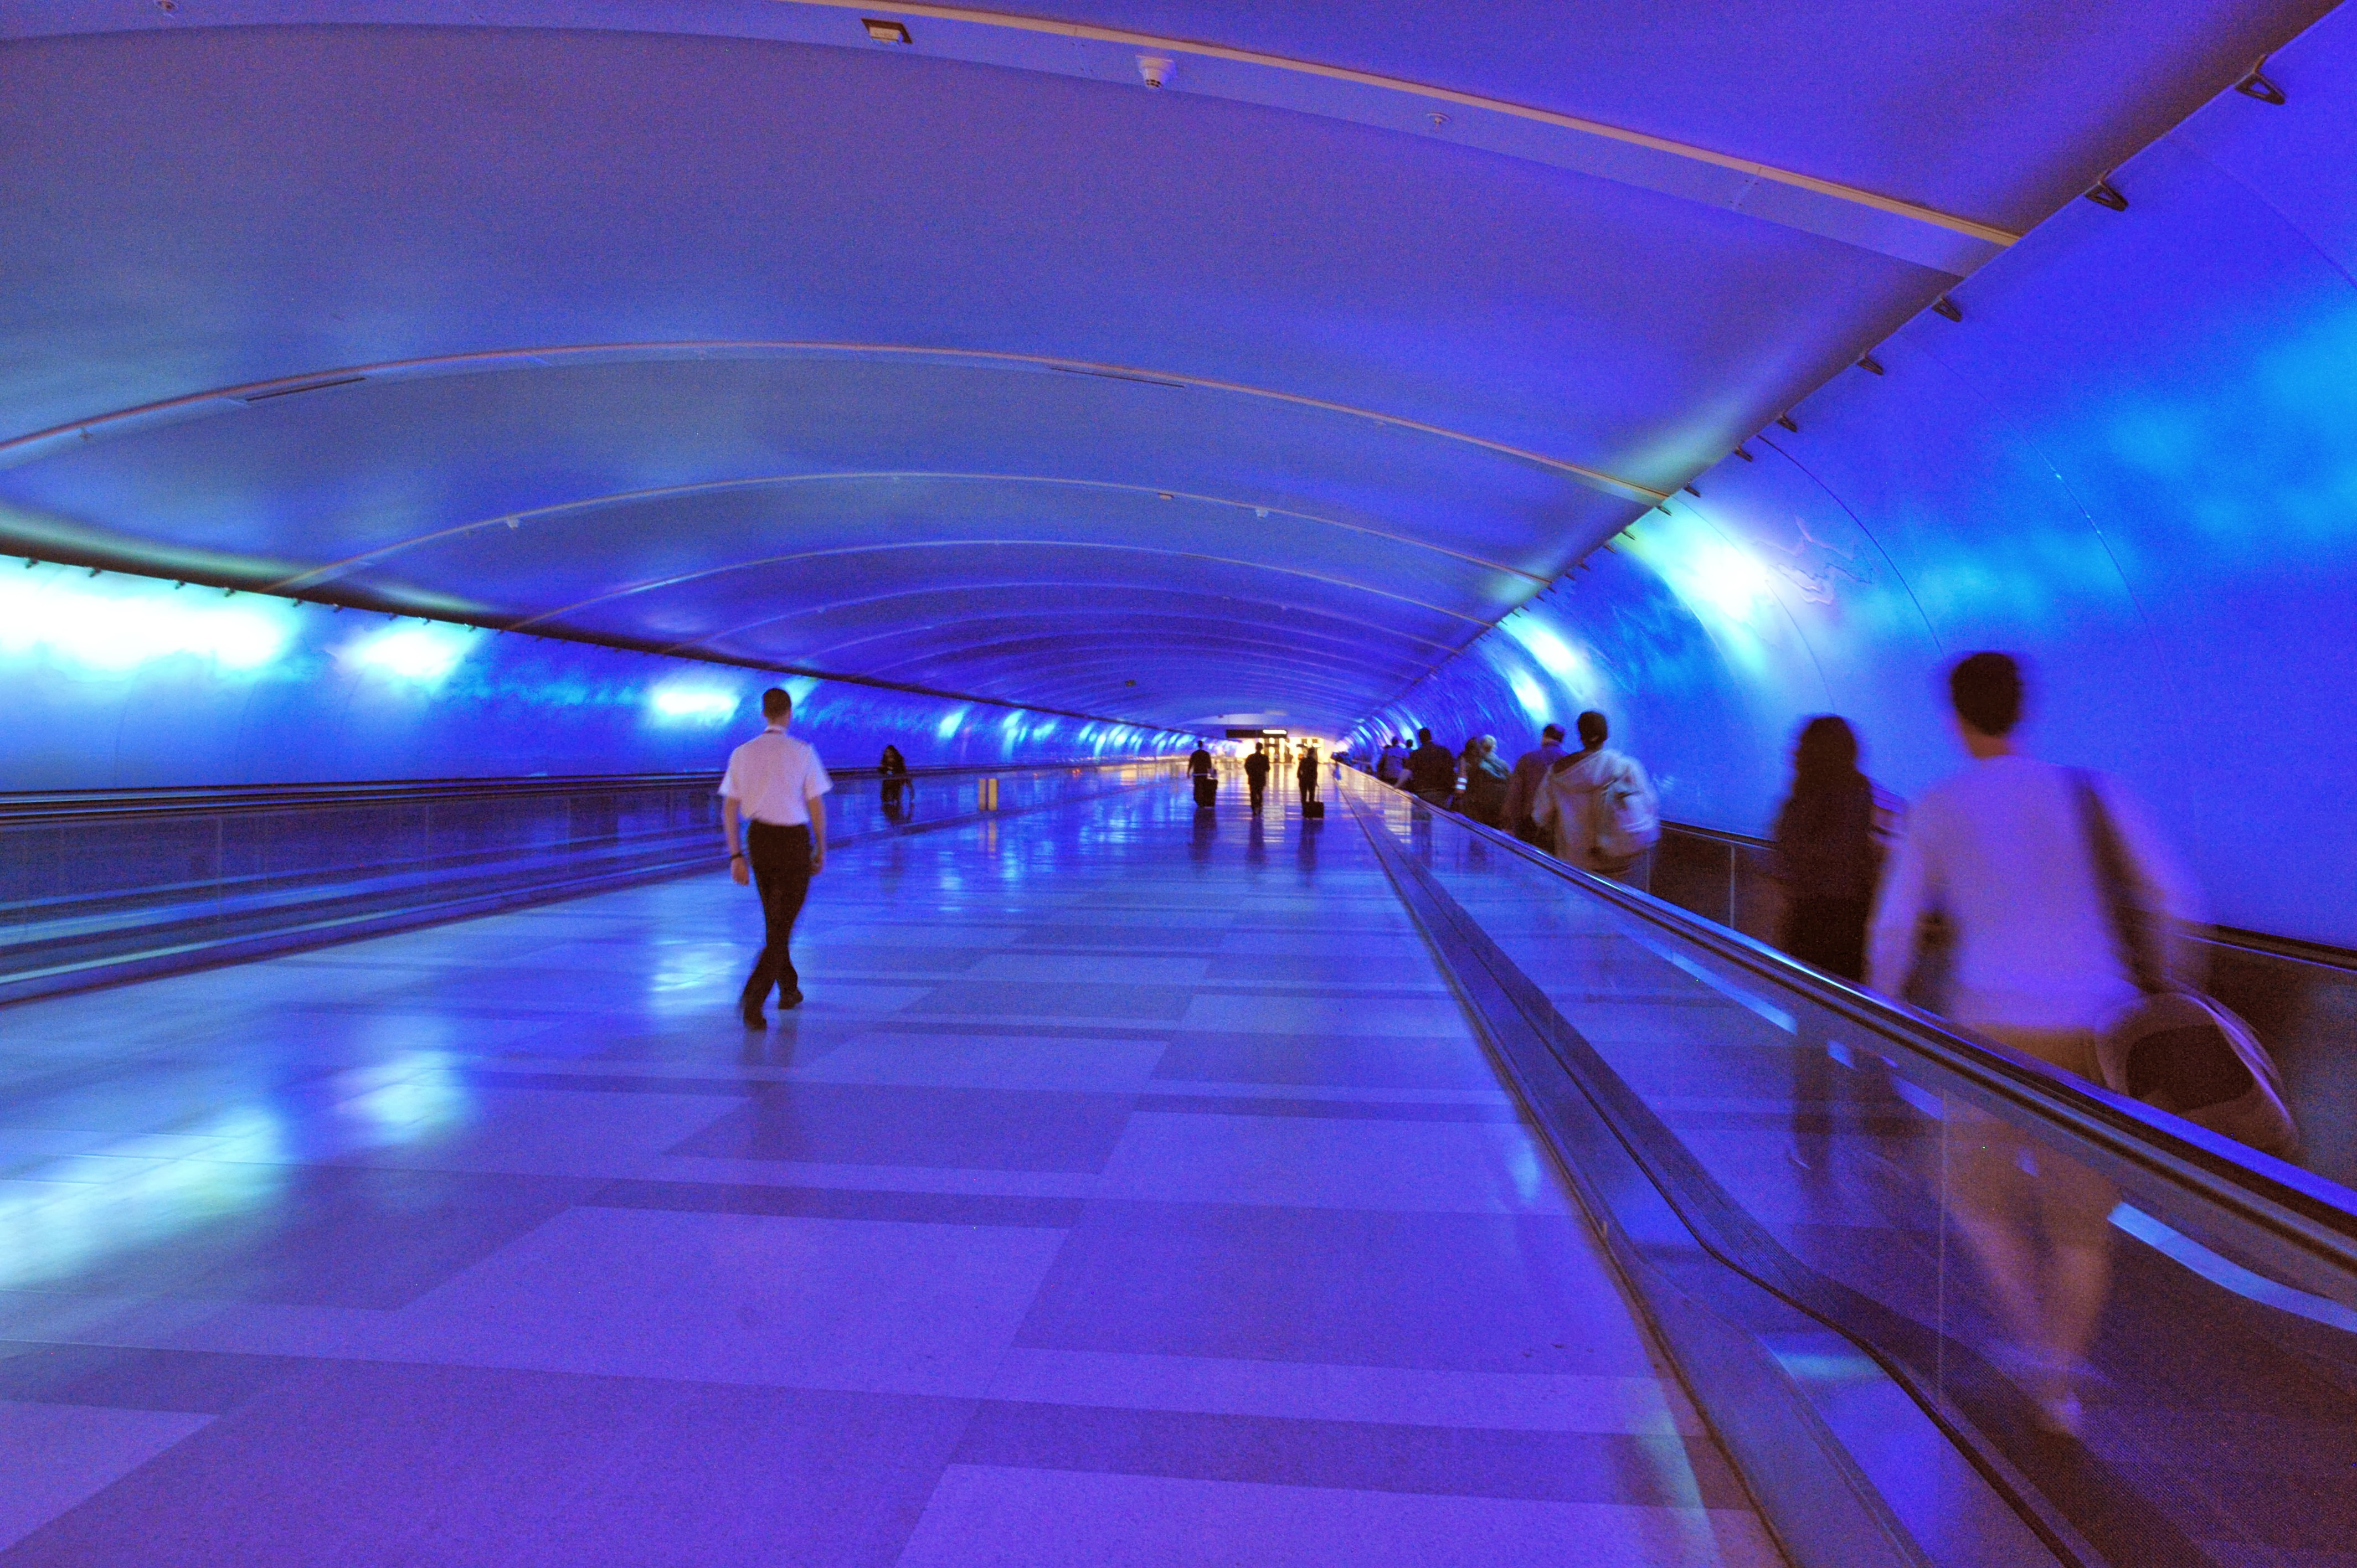 An underground walkway cast in a vibrant blue light thanks to color changing lighting.